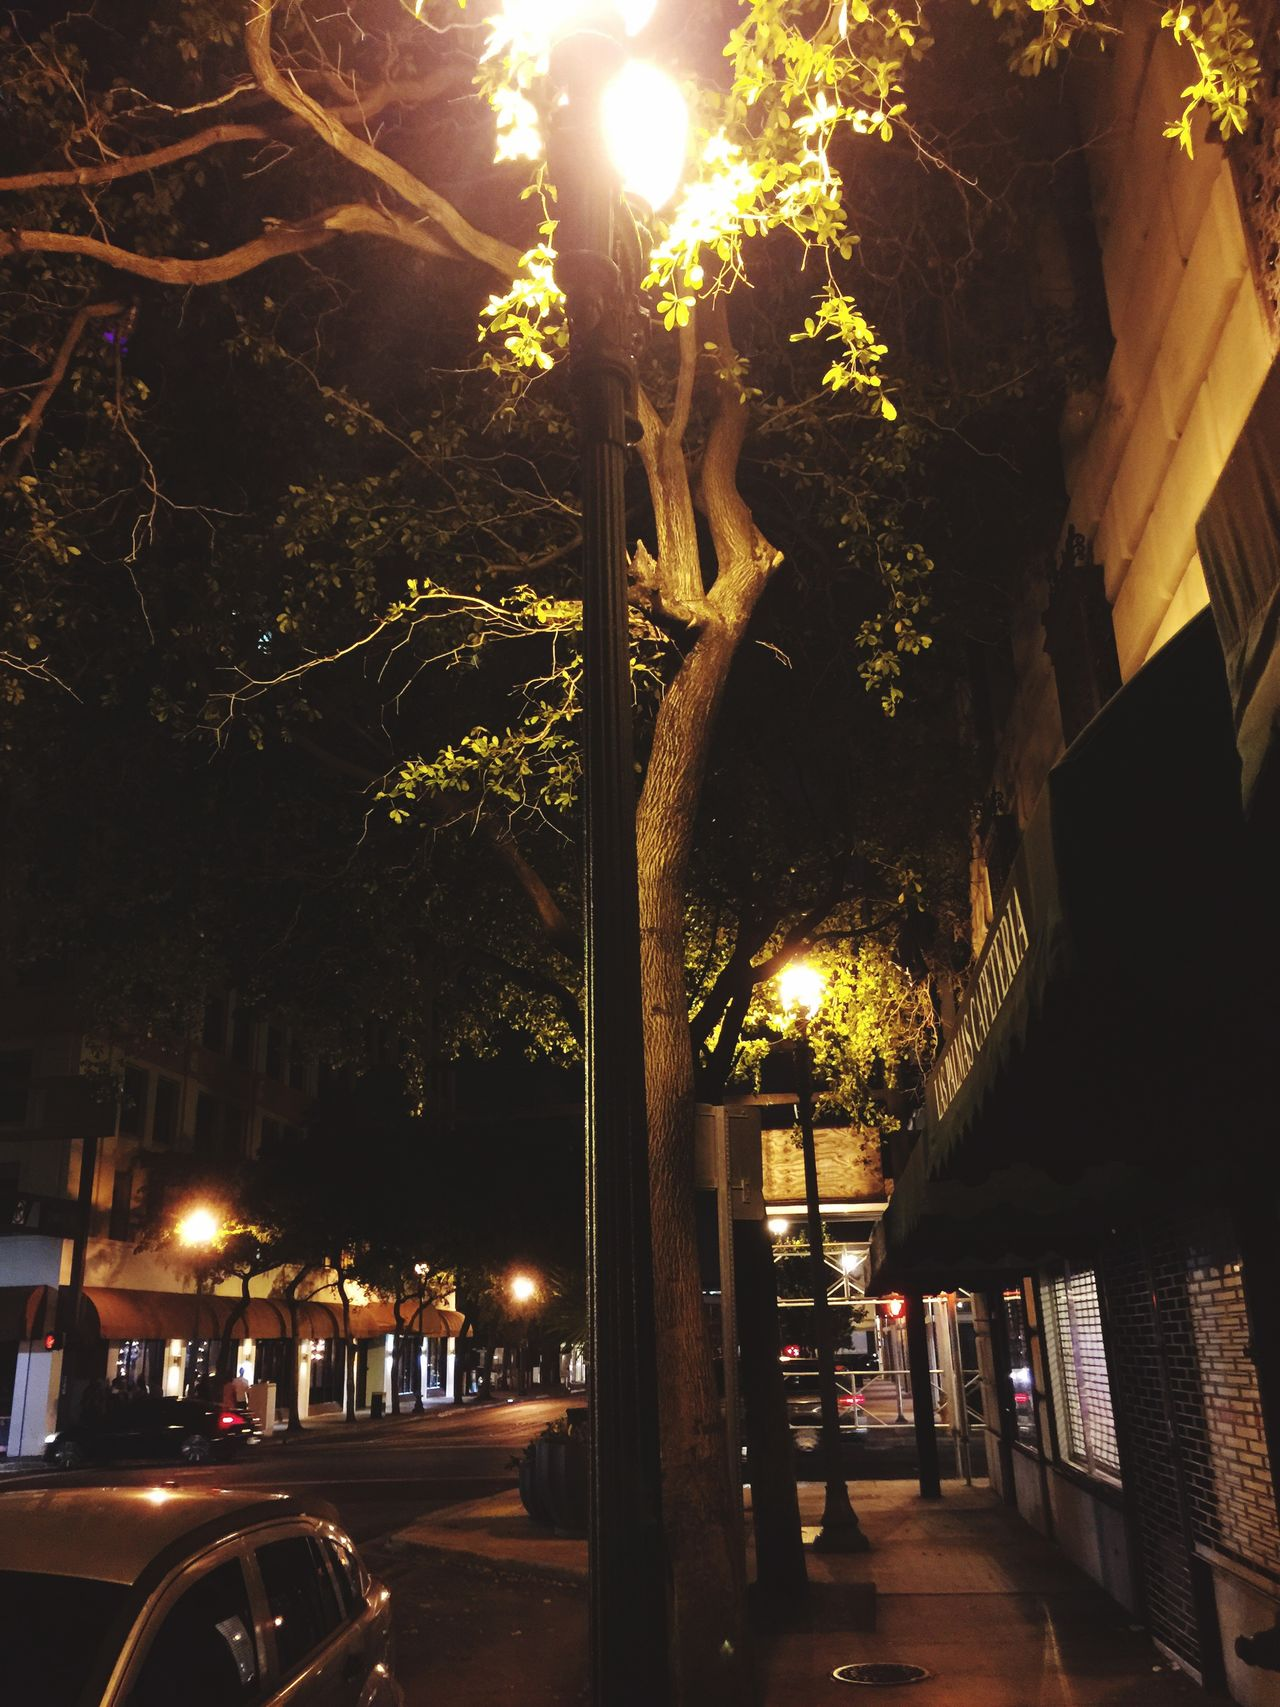 Illuminated Night Tree Outdoors Architecture Building Exterior Built Structure No People Nature City Streetphotography City Street Desolate